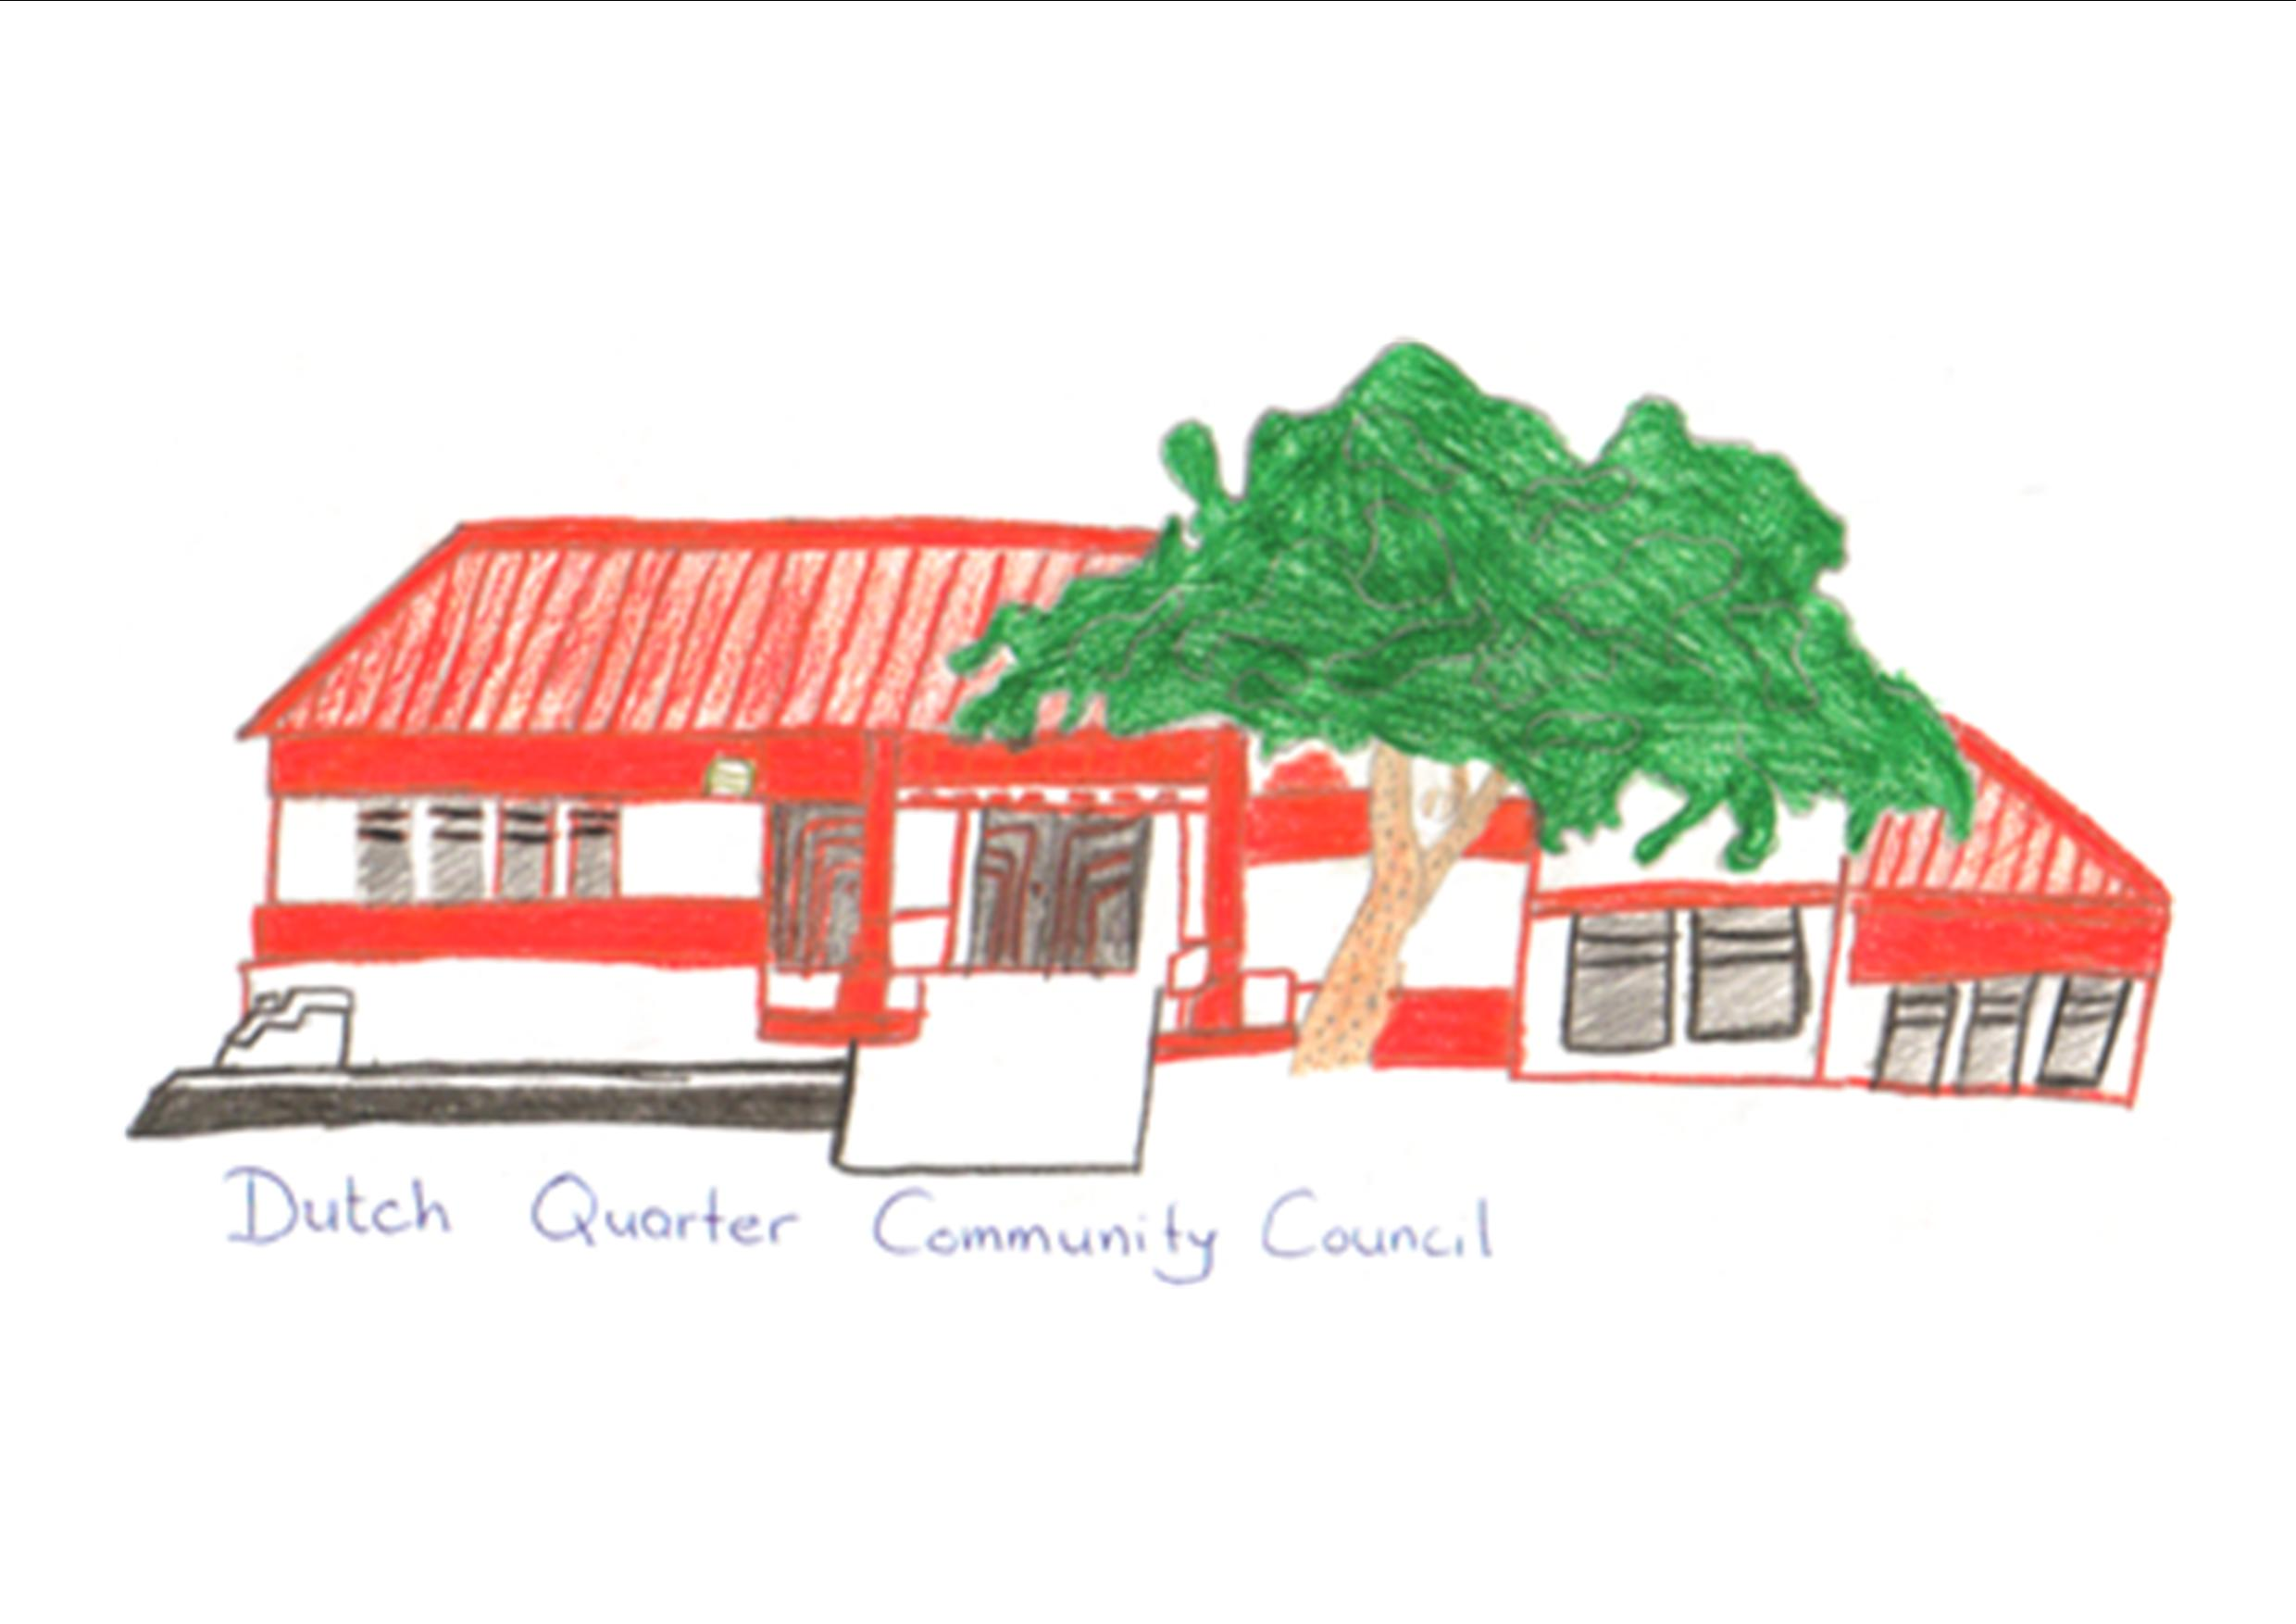 Dutch Quarter Community Council